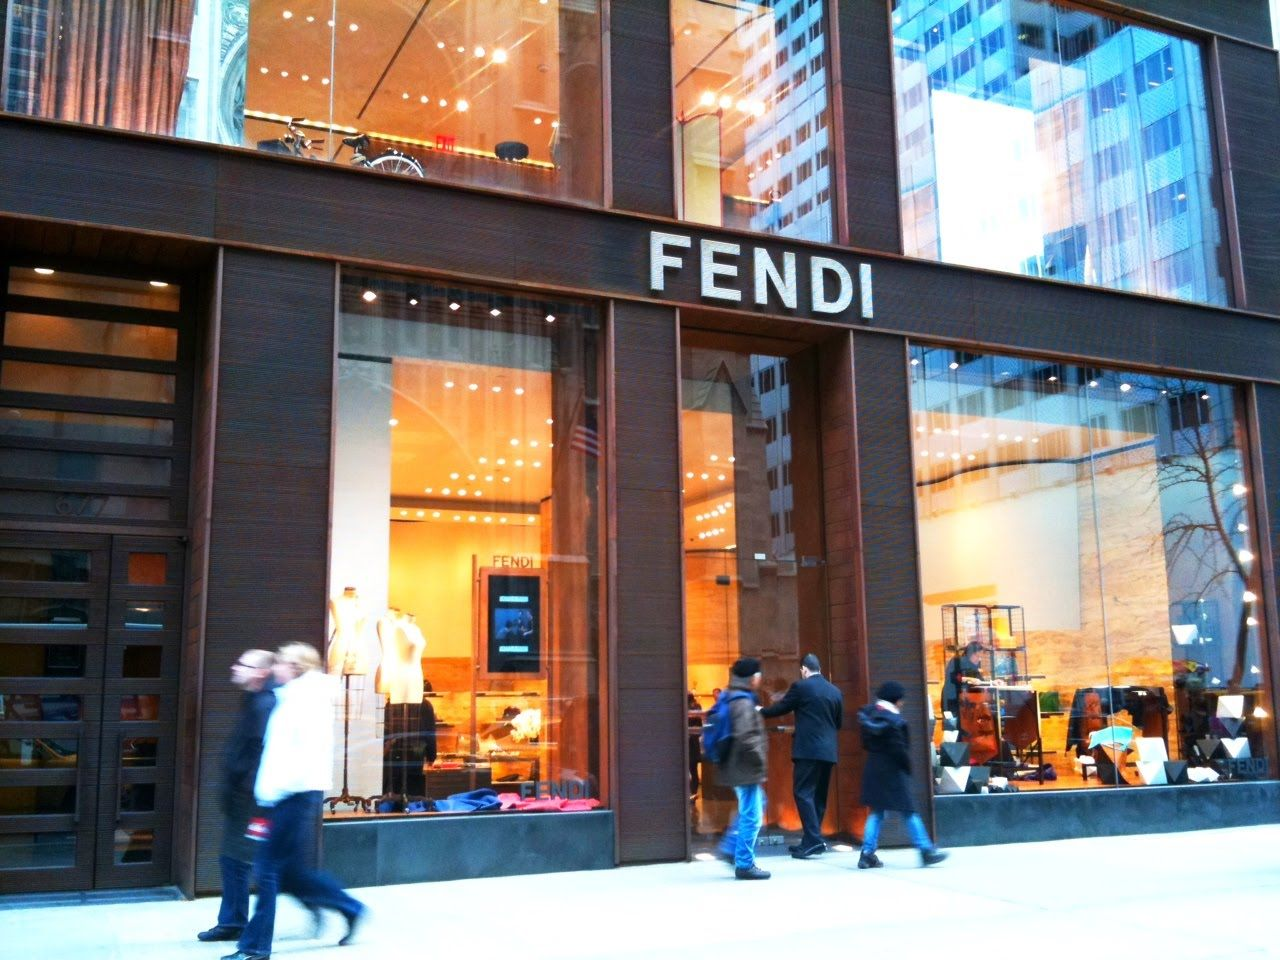 Fendi stores | Fendi store on 5th Avenue - New York City ...